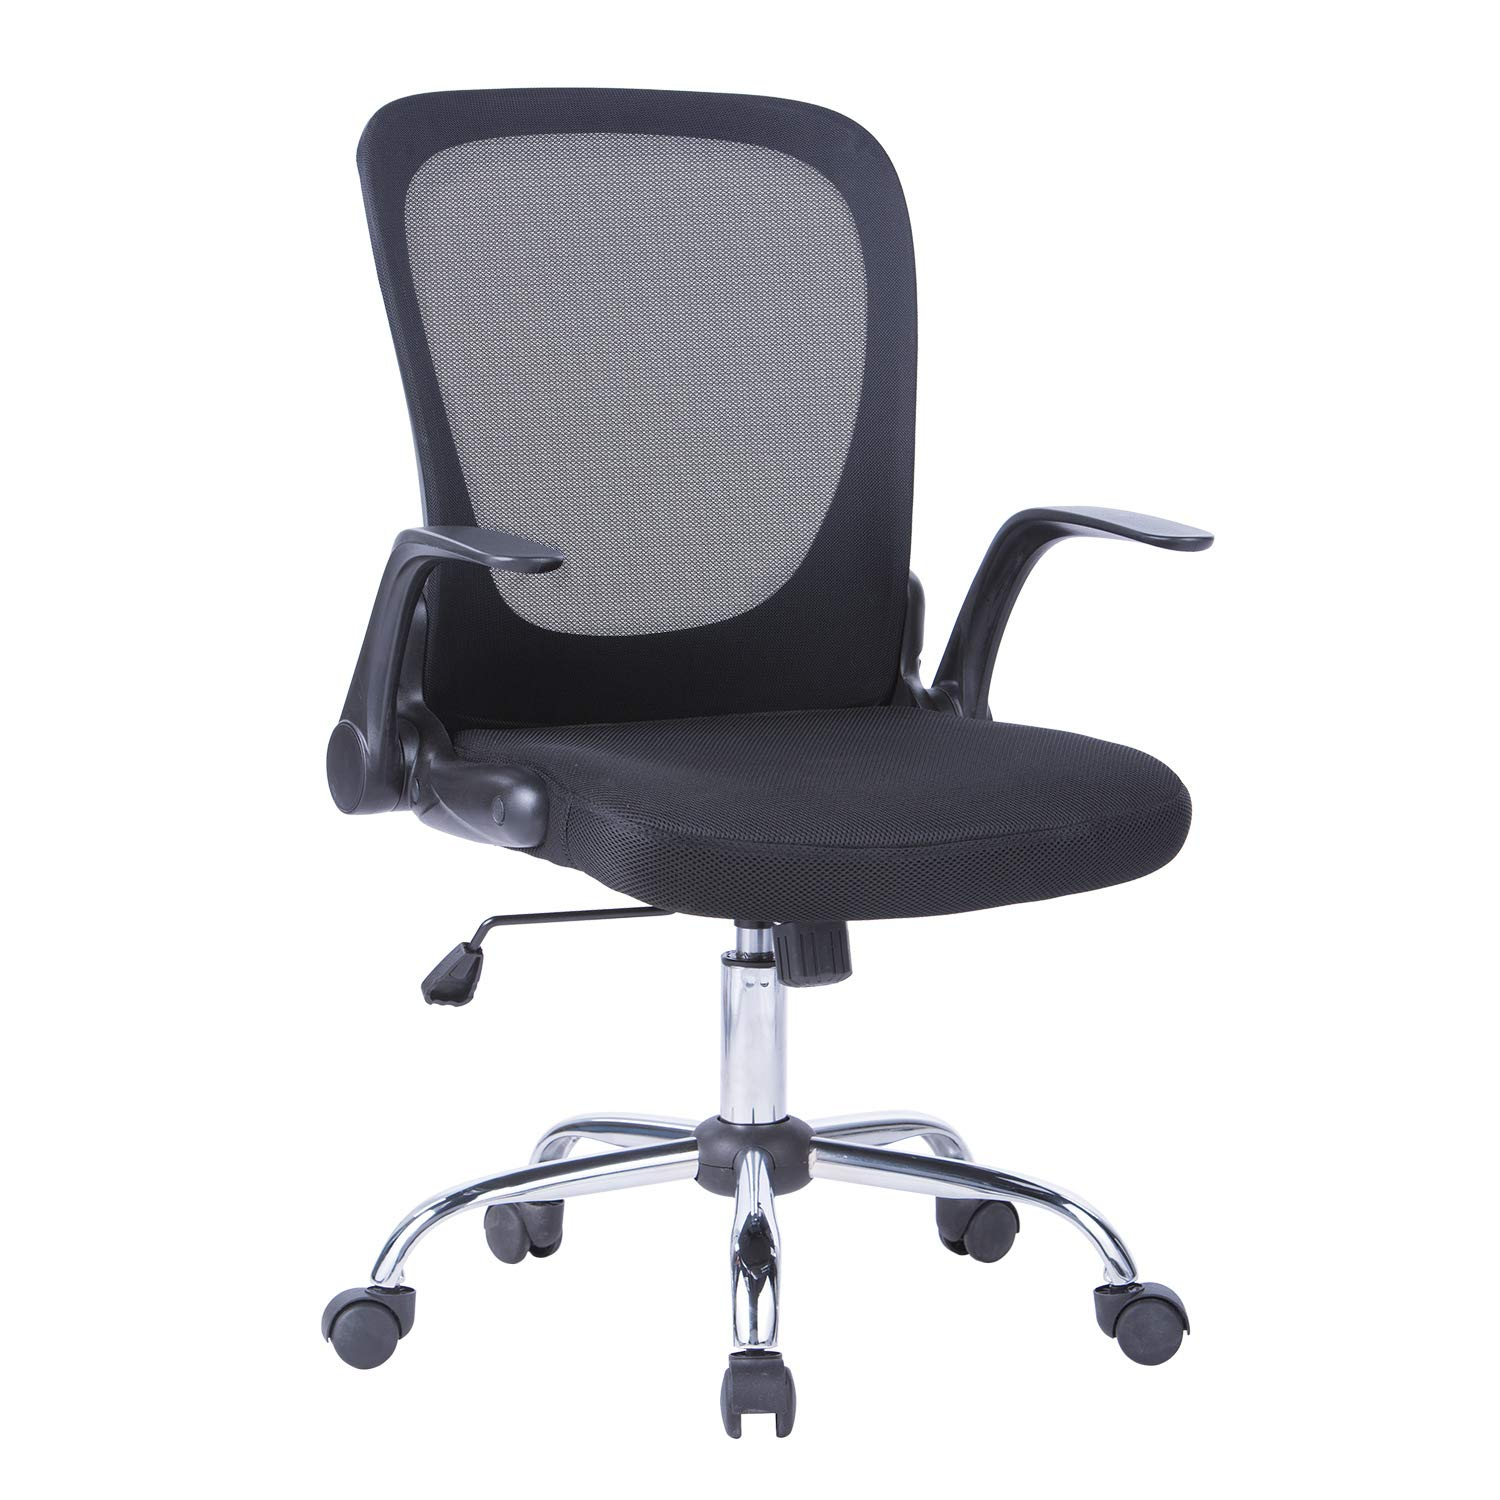 MBOO Mid Back Mesh Task Chair, Ergonomic Swivel Computer Desk Office Chair with Flip Up Arms, Siutable for Office and Home, Black